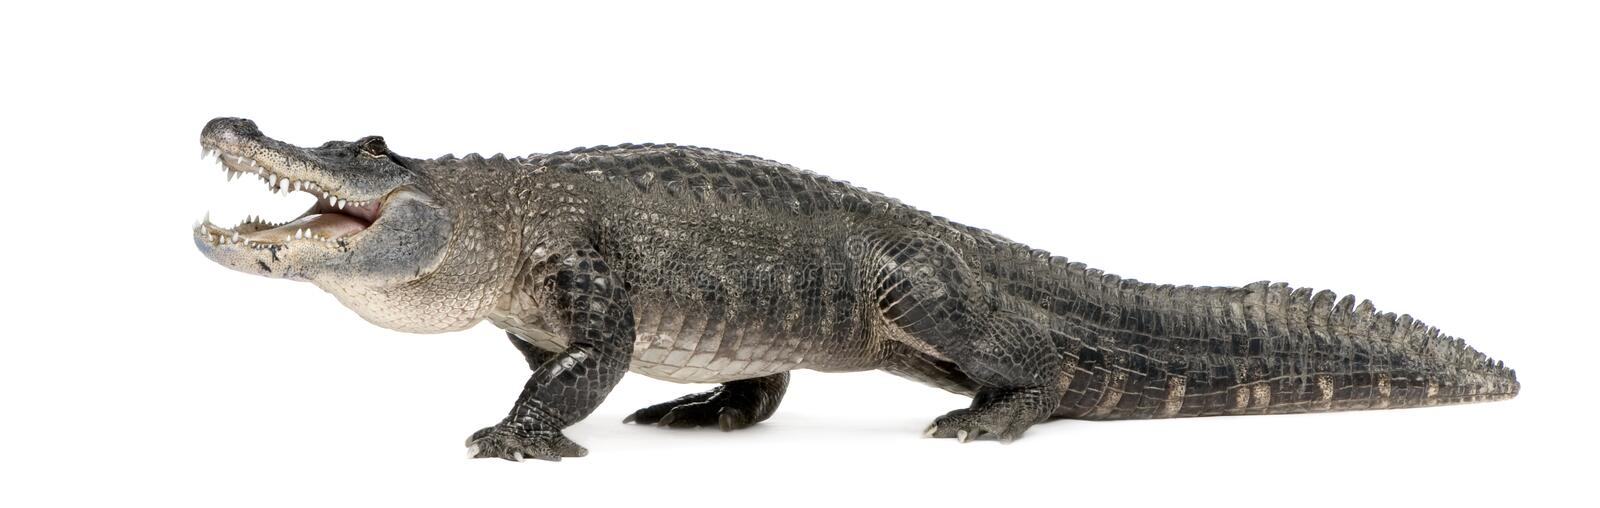 American Alligator - Alligator mississippiensis. American Alligator (30 years) - Alligator mississippiensis in front of a white background royalty free stock images